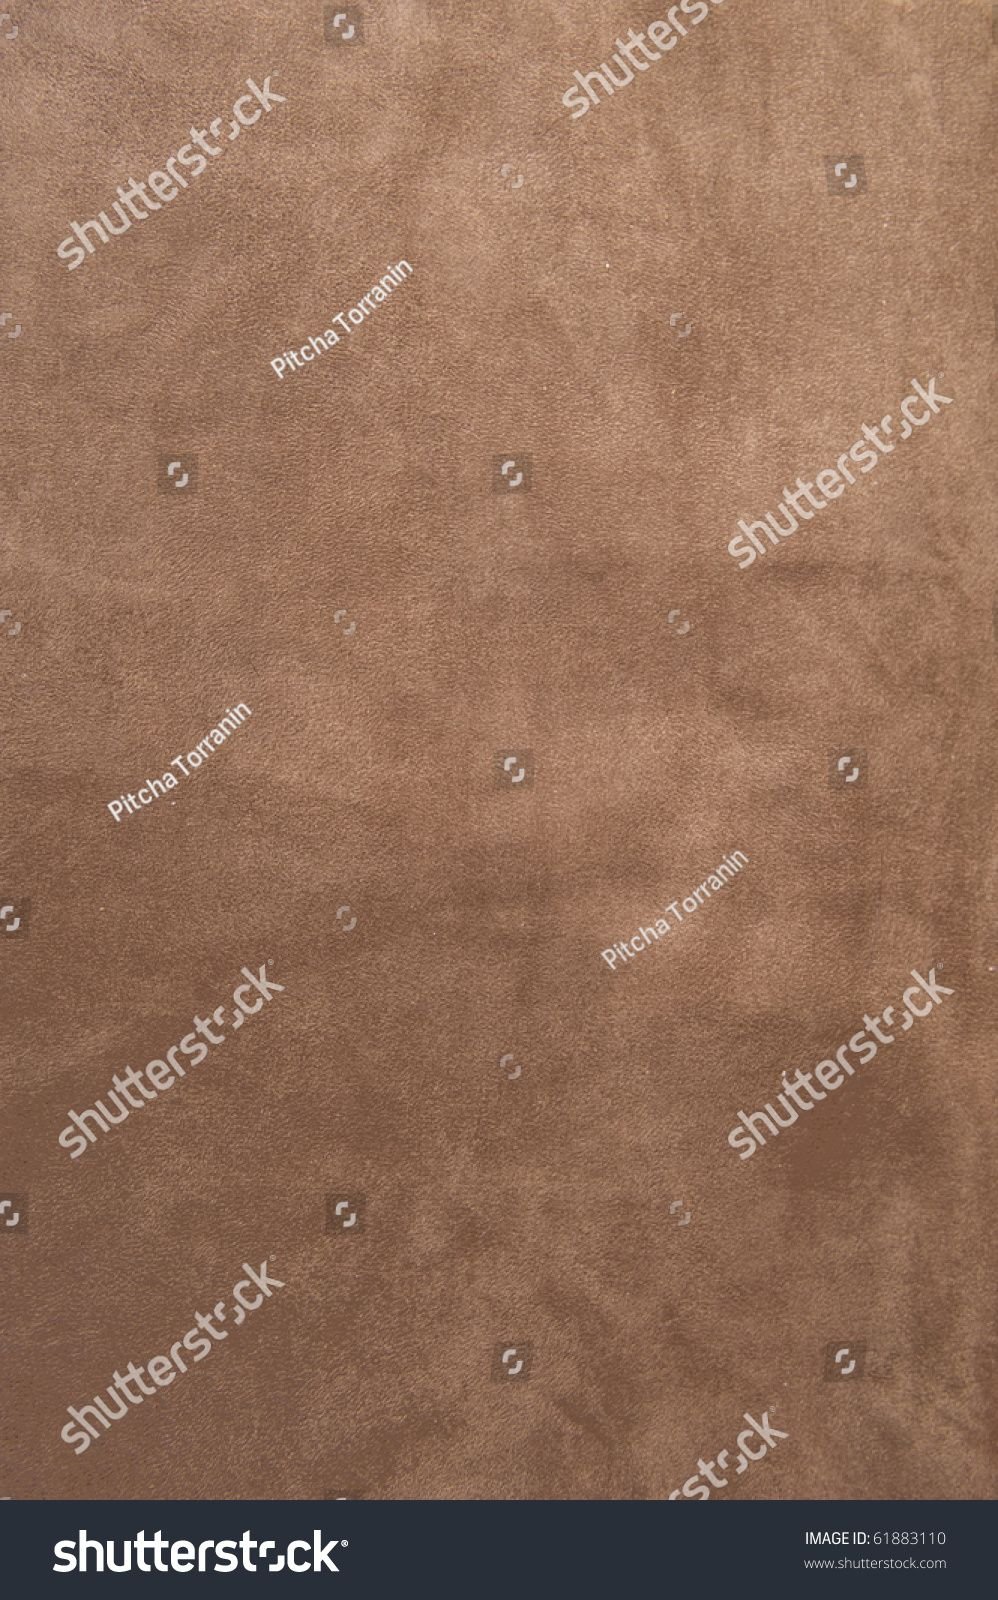 Brown Velvet Texture Closeup Useful As Background For Design